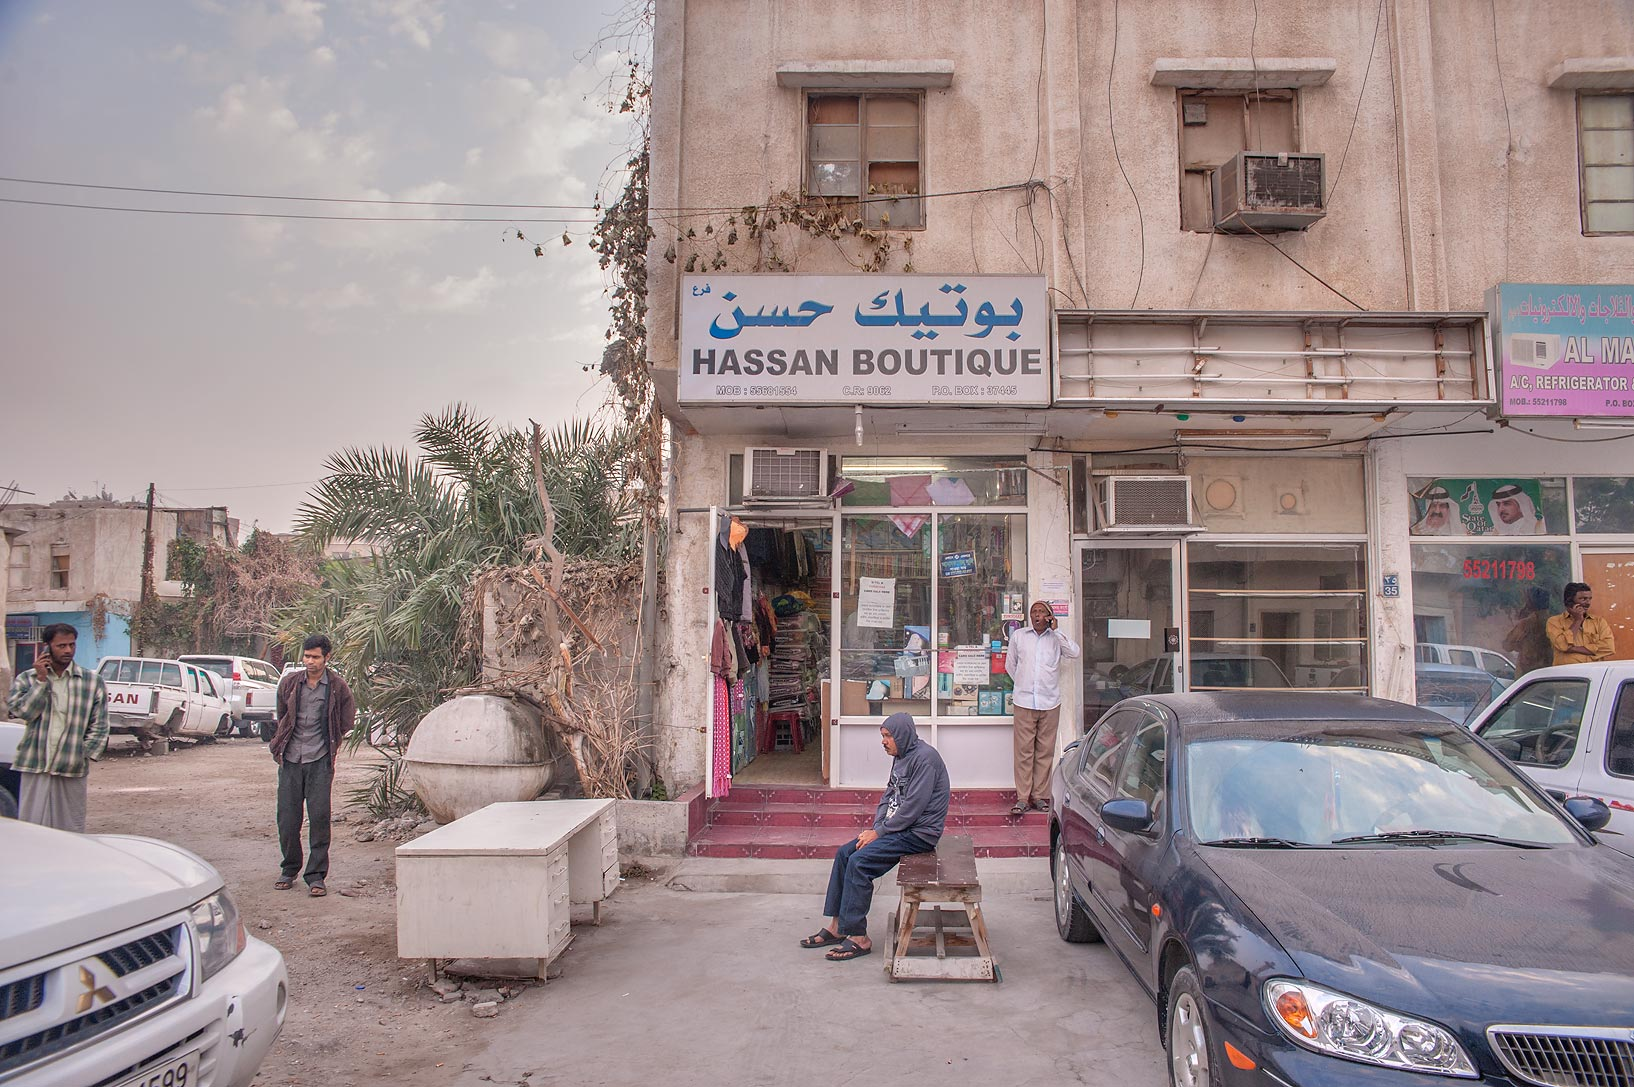 Hassan Boutique on Umm Wishad St. in Musheirib neighborhood. Doha, Qatar